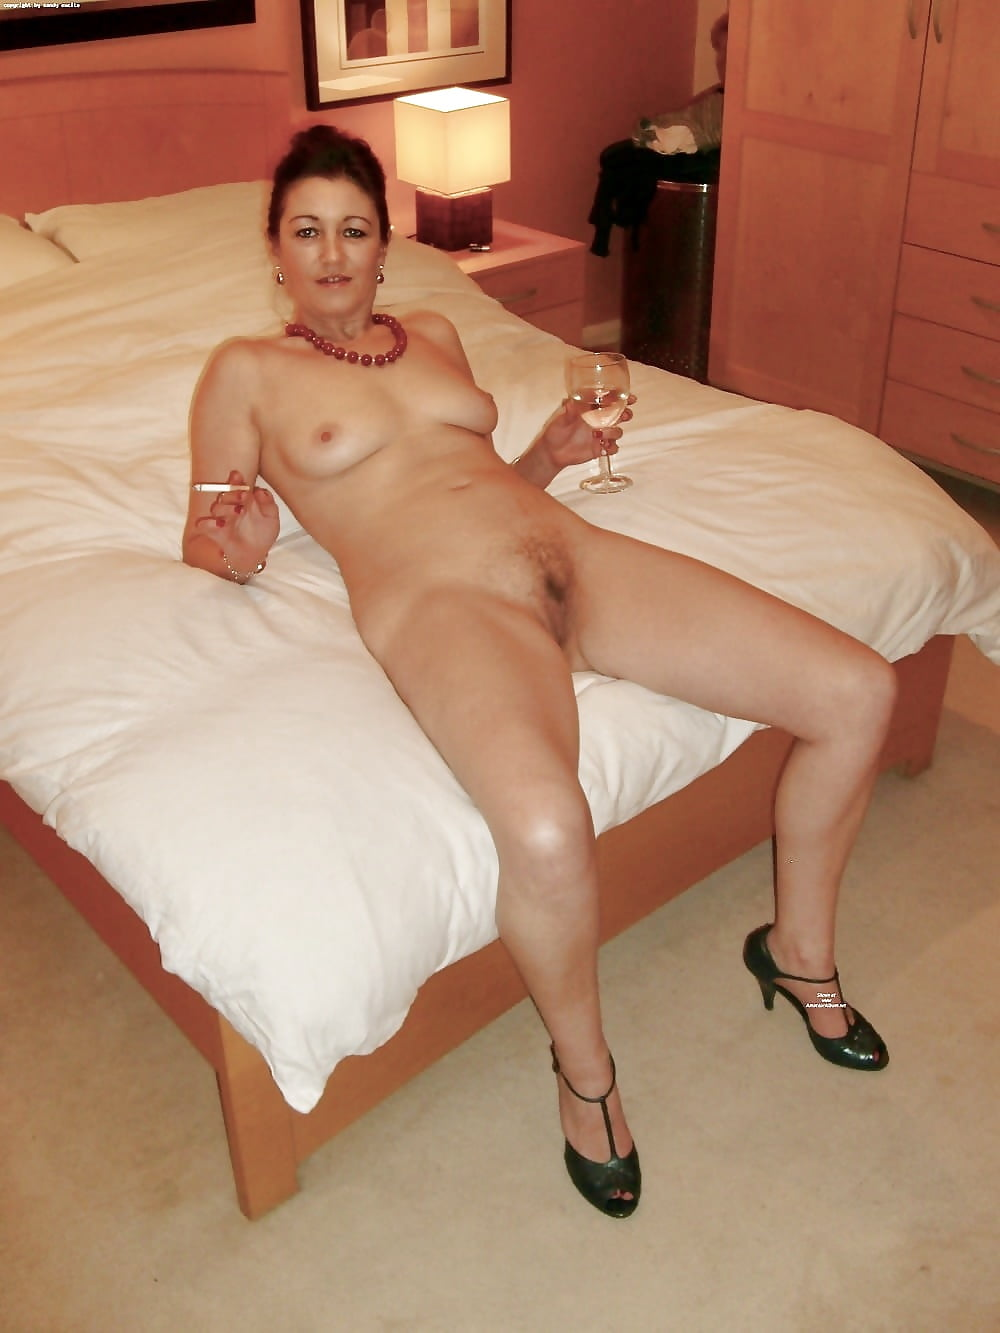 Amateur hotel mature naked, skinny with huge natural topless sex